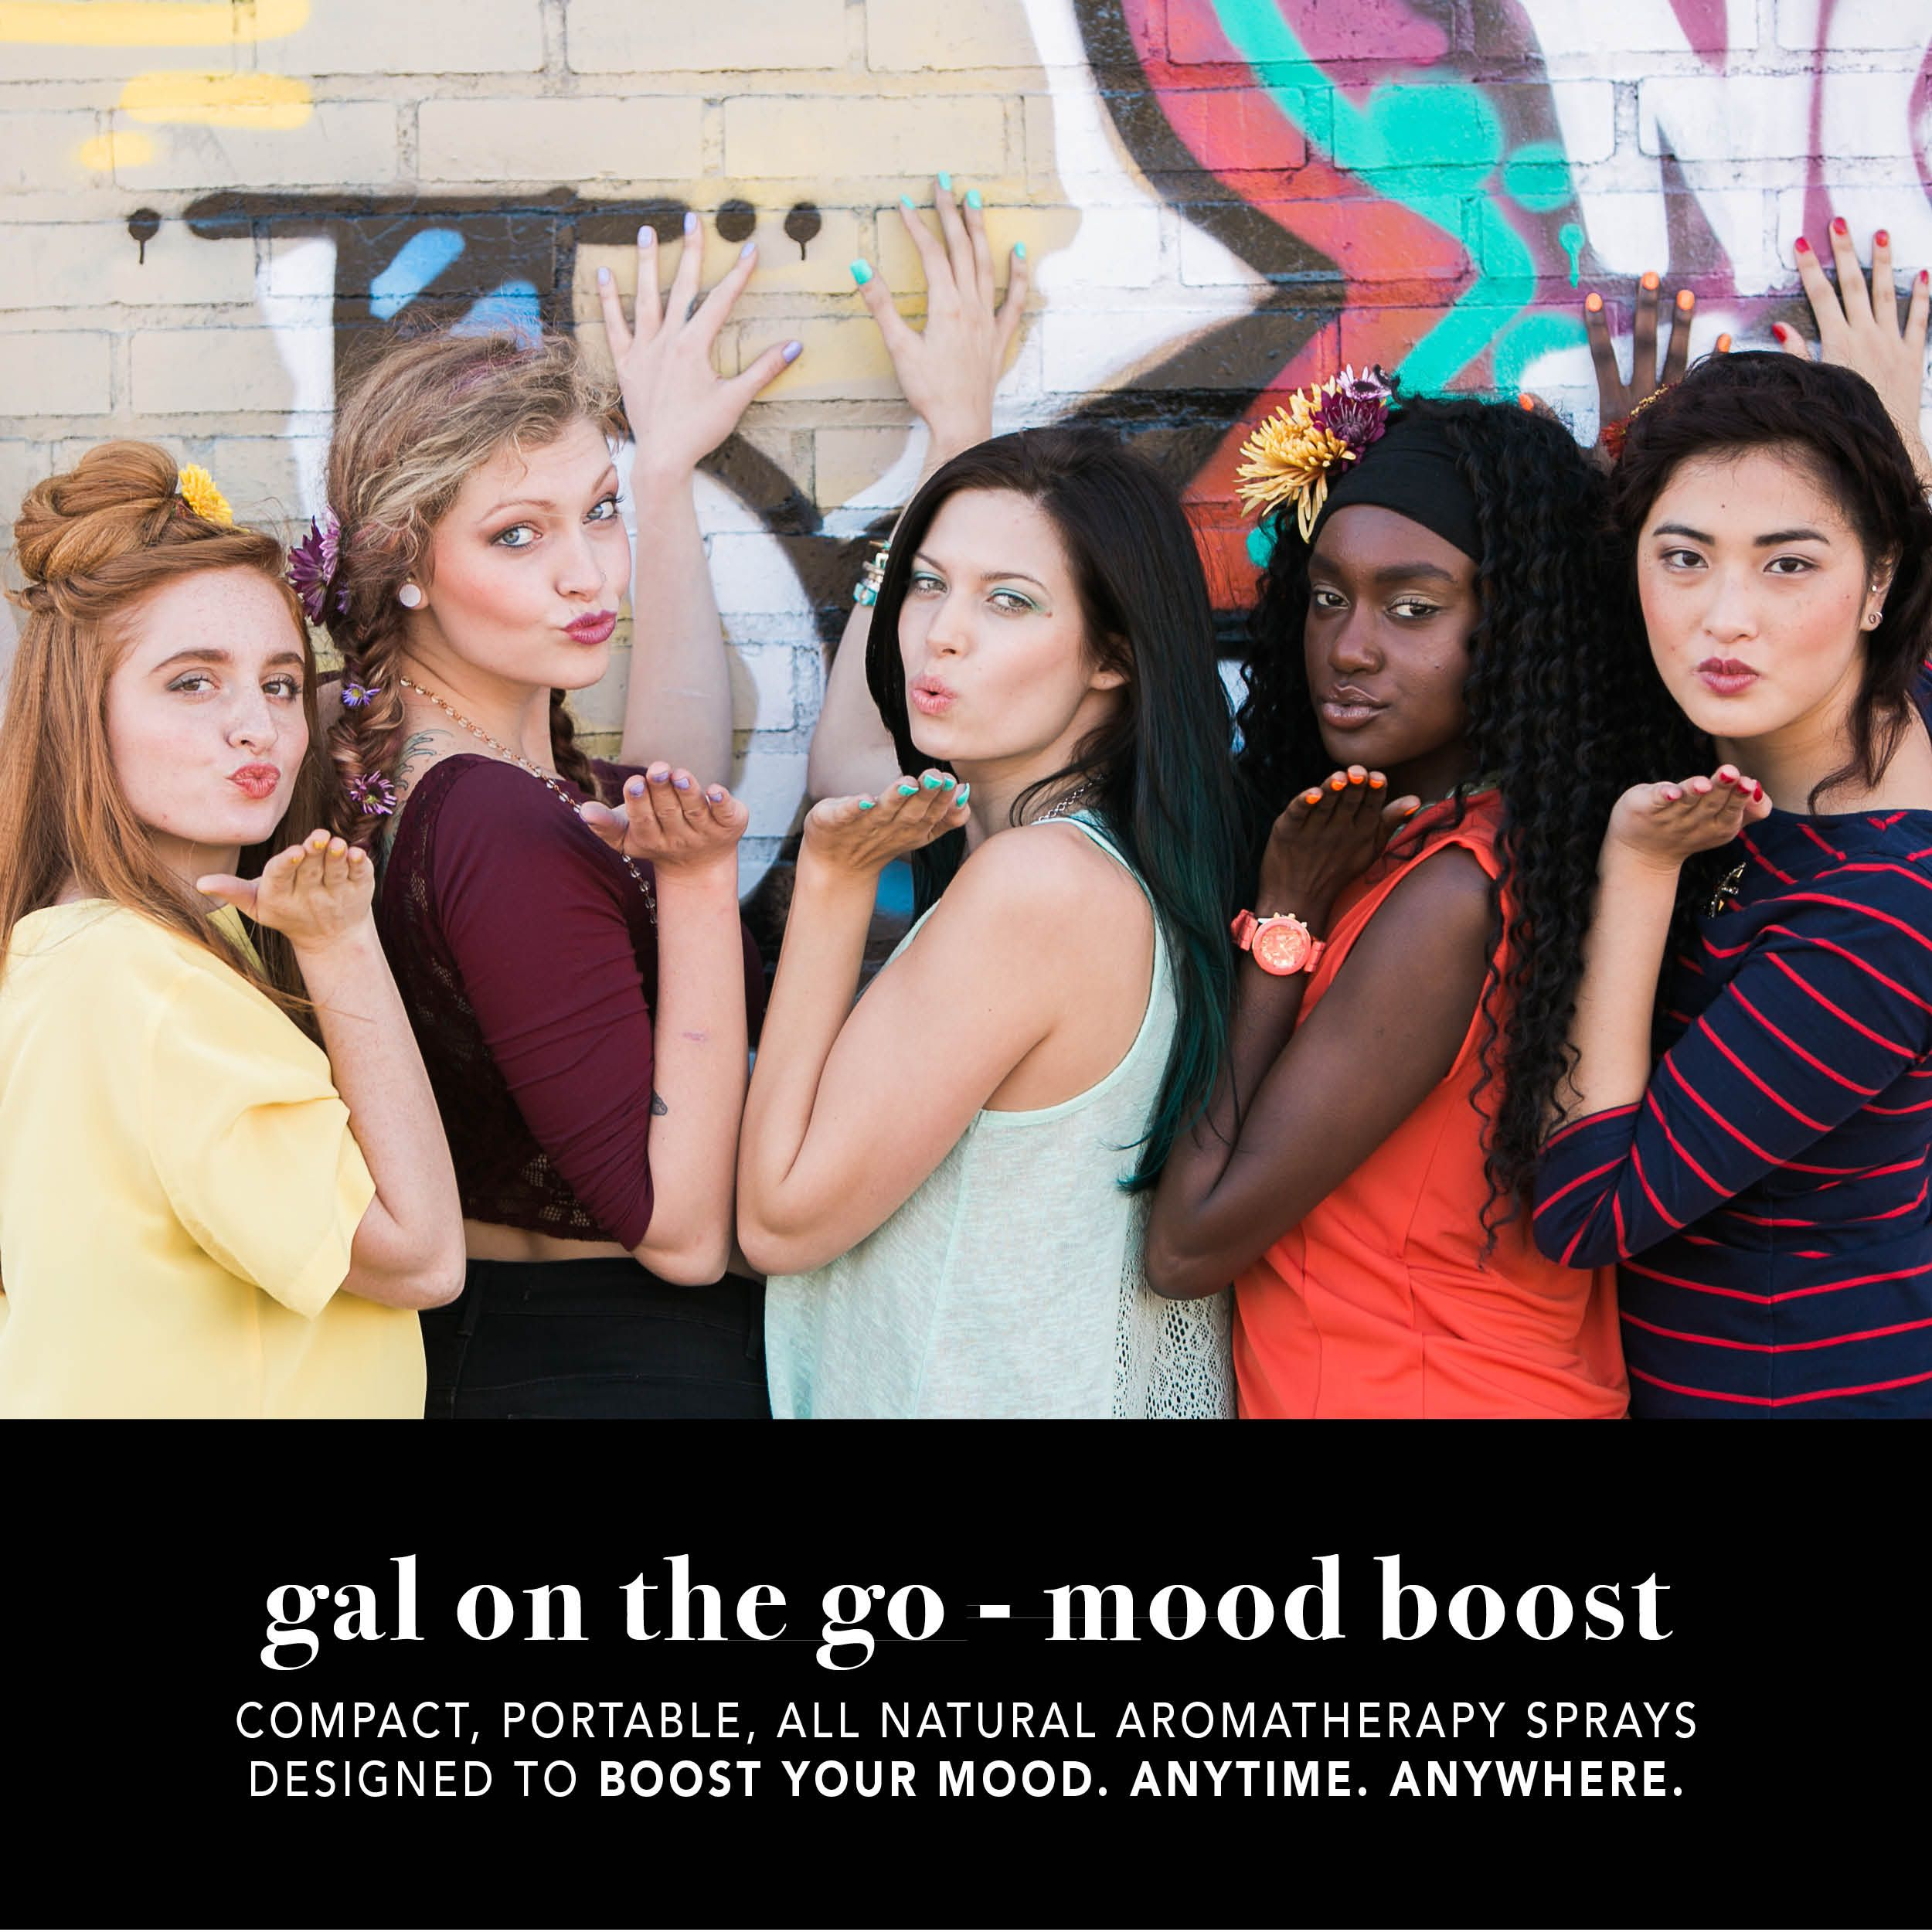 Just because you are on the go doesn't mean you can't boost your mood.                           #adoratherapy#aromatherapy#essentialoils#chakraboost#moodboost#organicproducts#natural #beauty#wellness